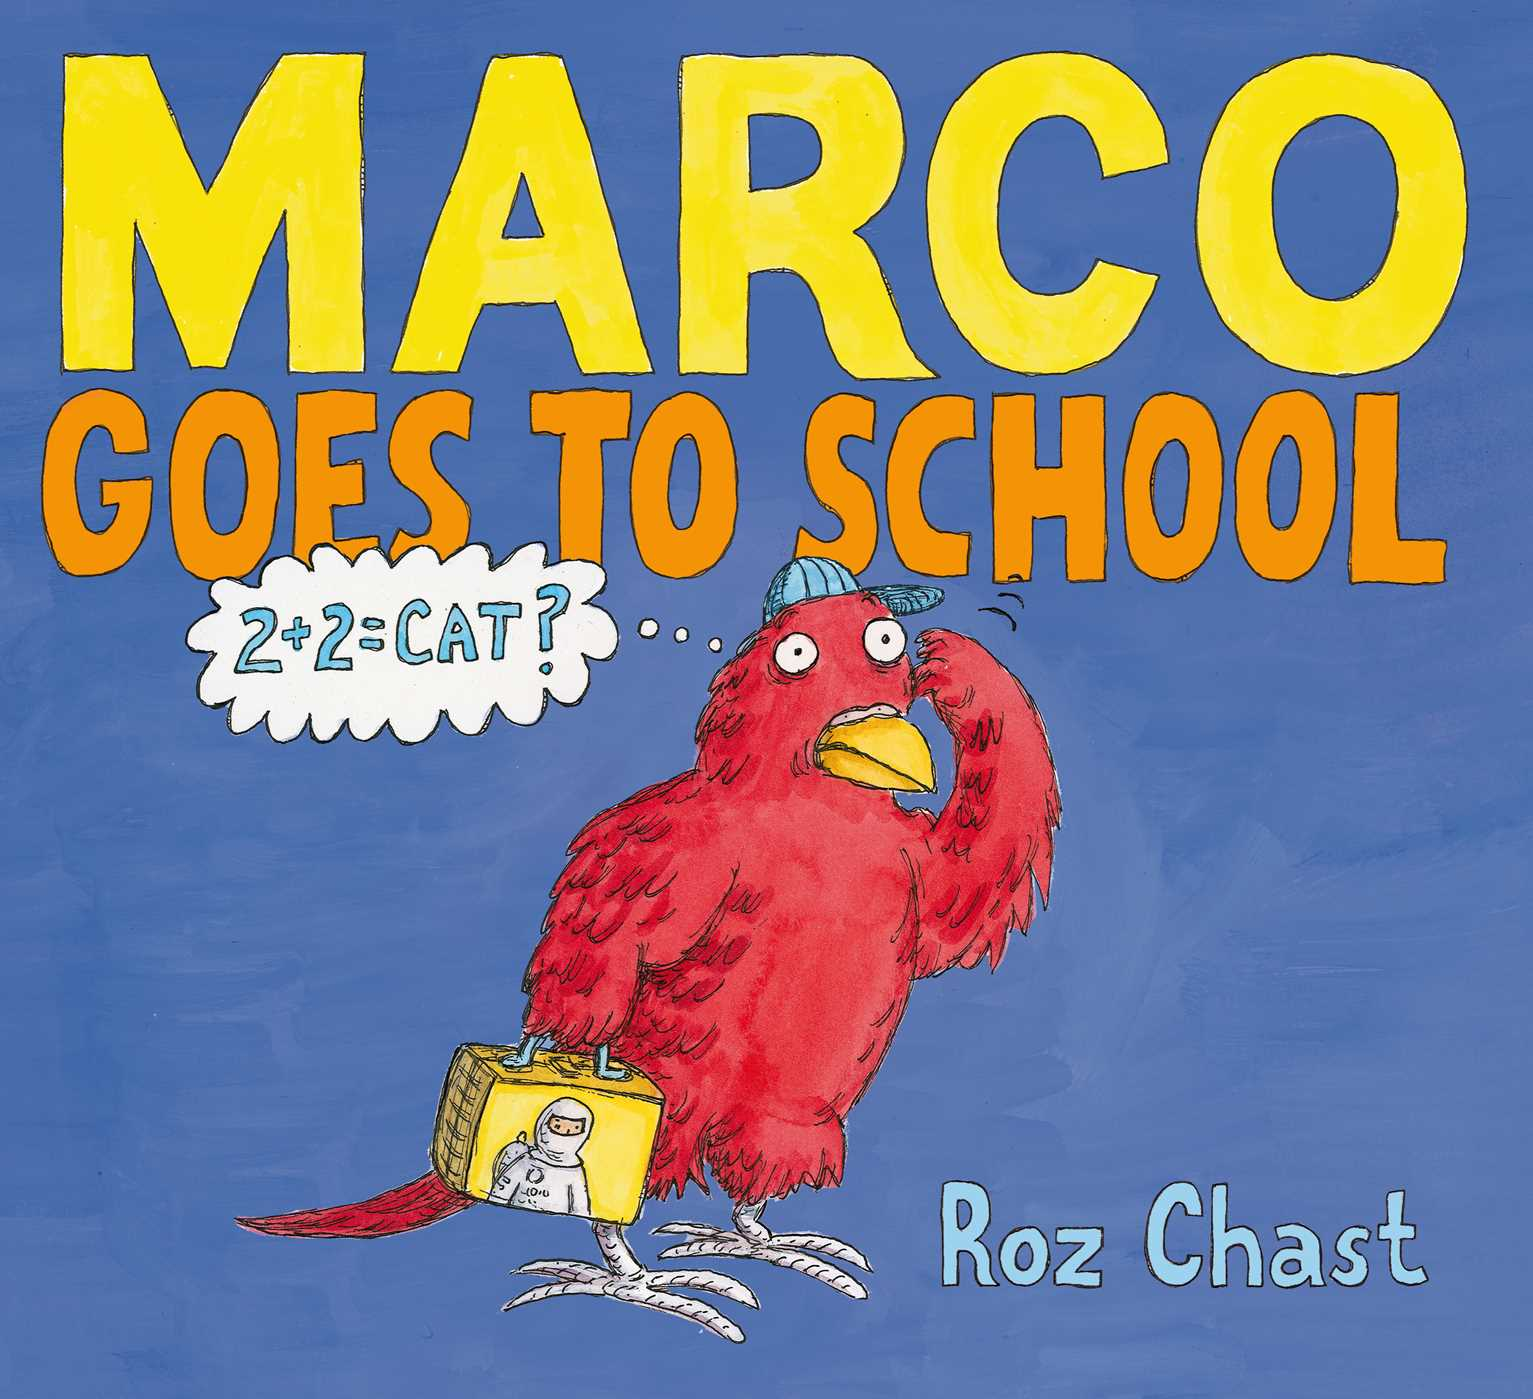 Marco goes to school 9781442453074 hr